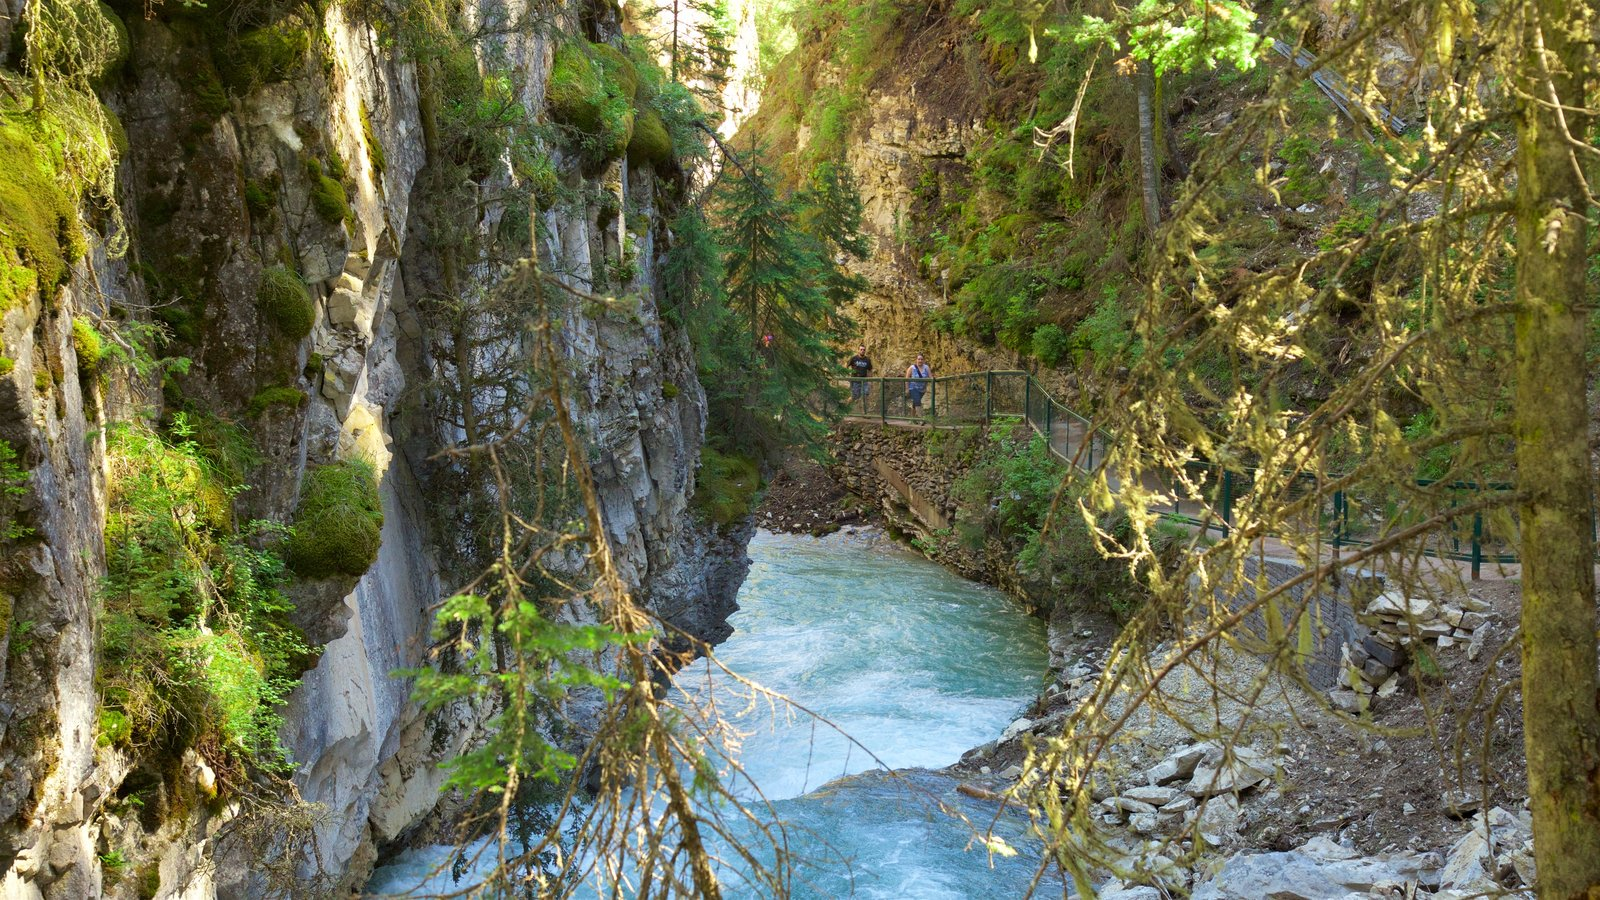 Johnston Canyon featuring a river or creek and a gorge or canyon